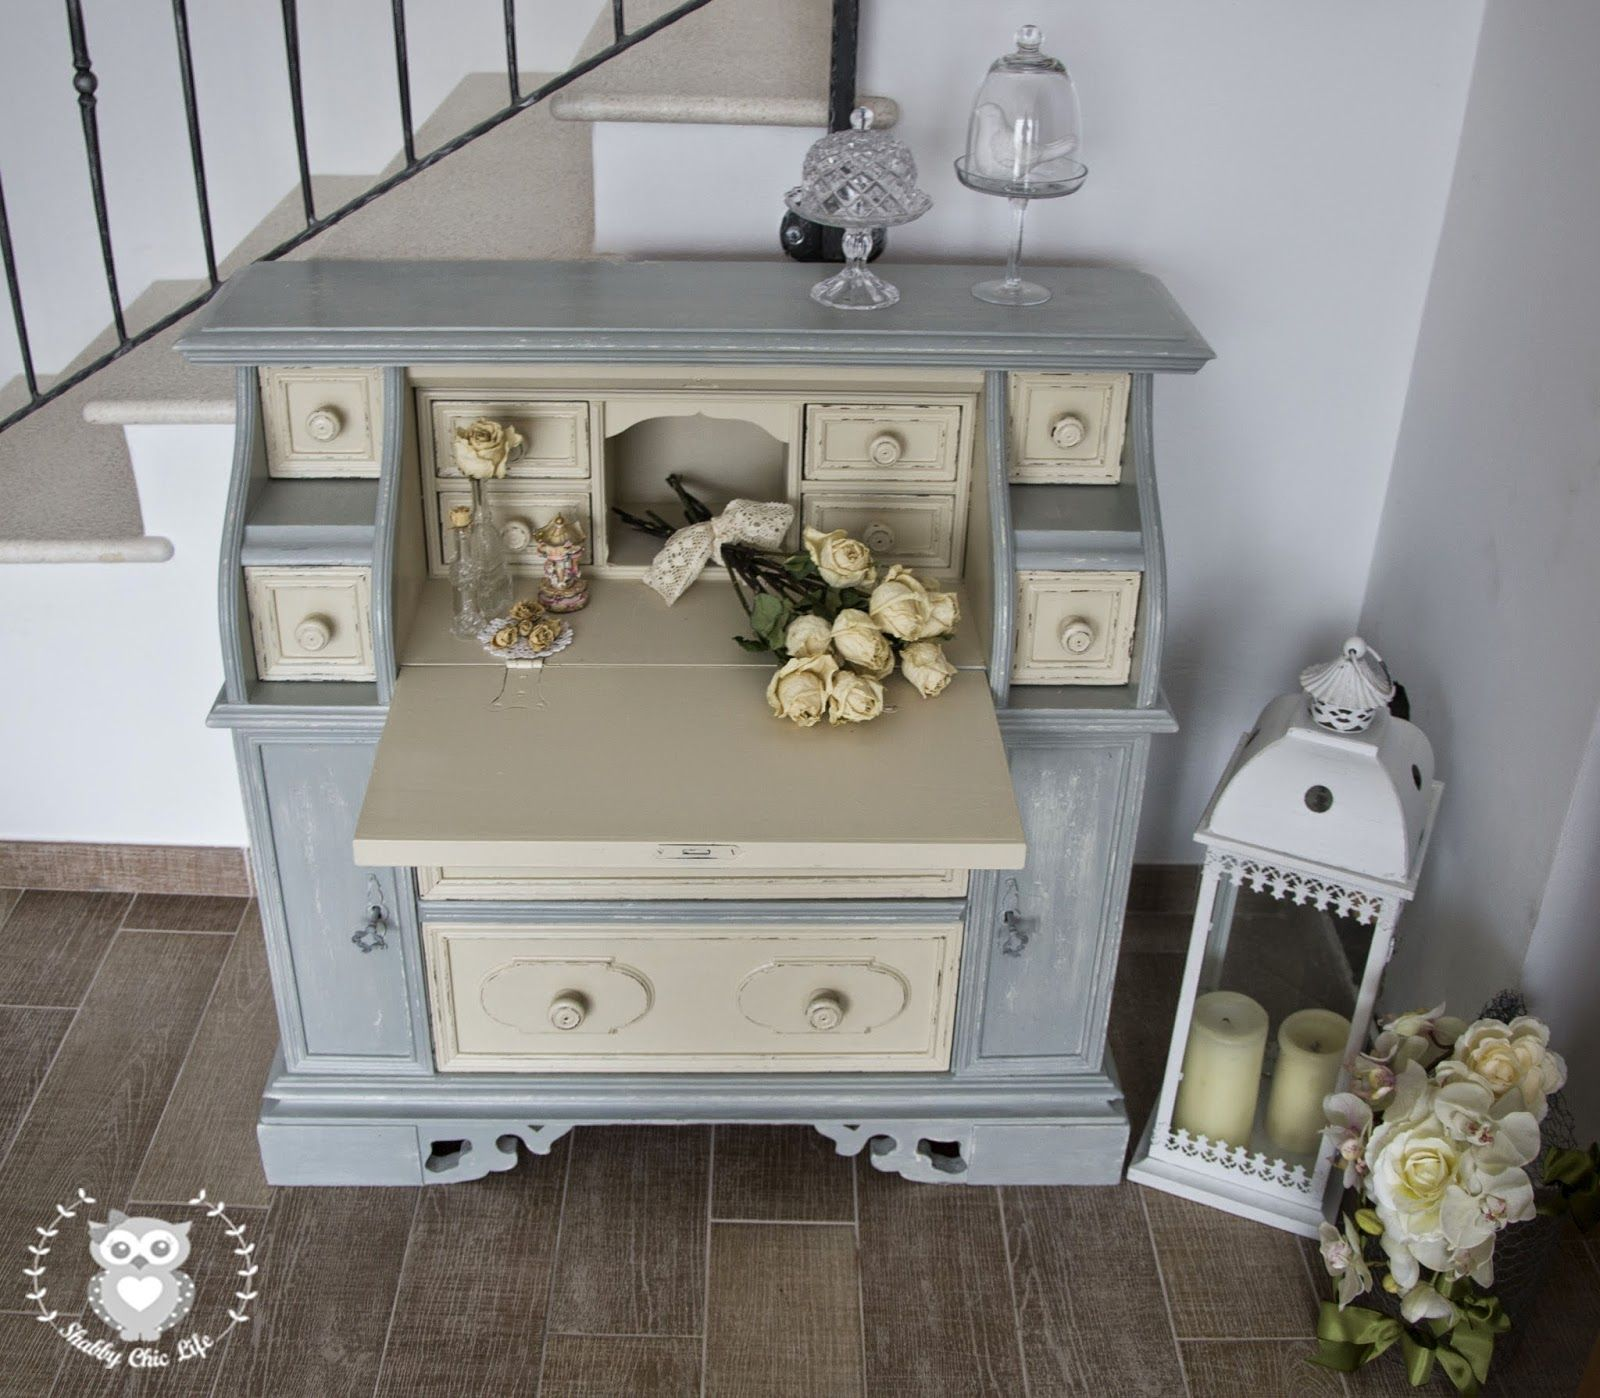 Chalk Paint, Shabby Chic e Decora Facile Arredamento